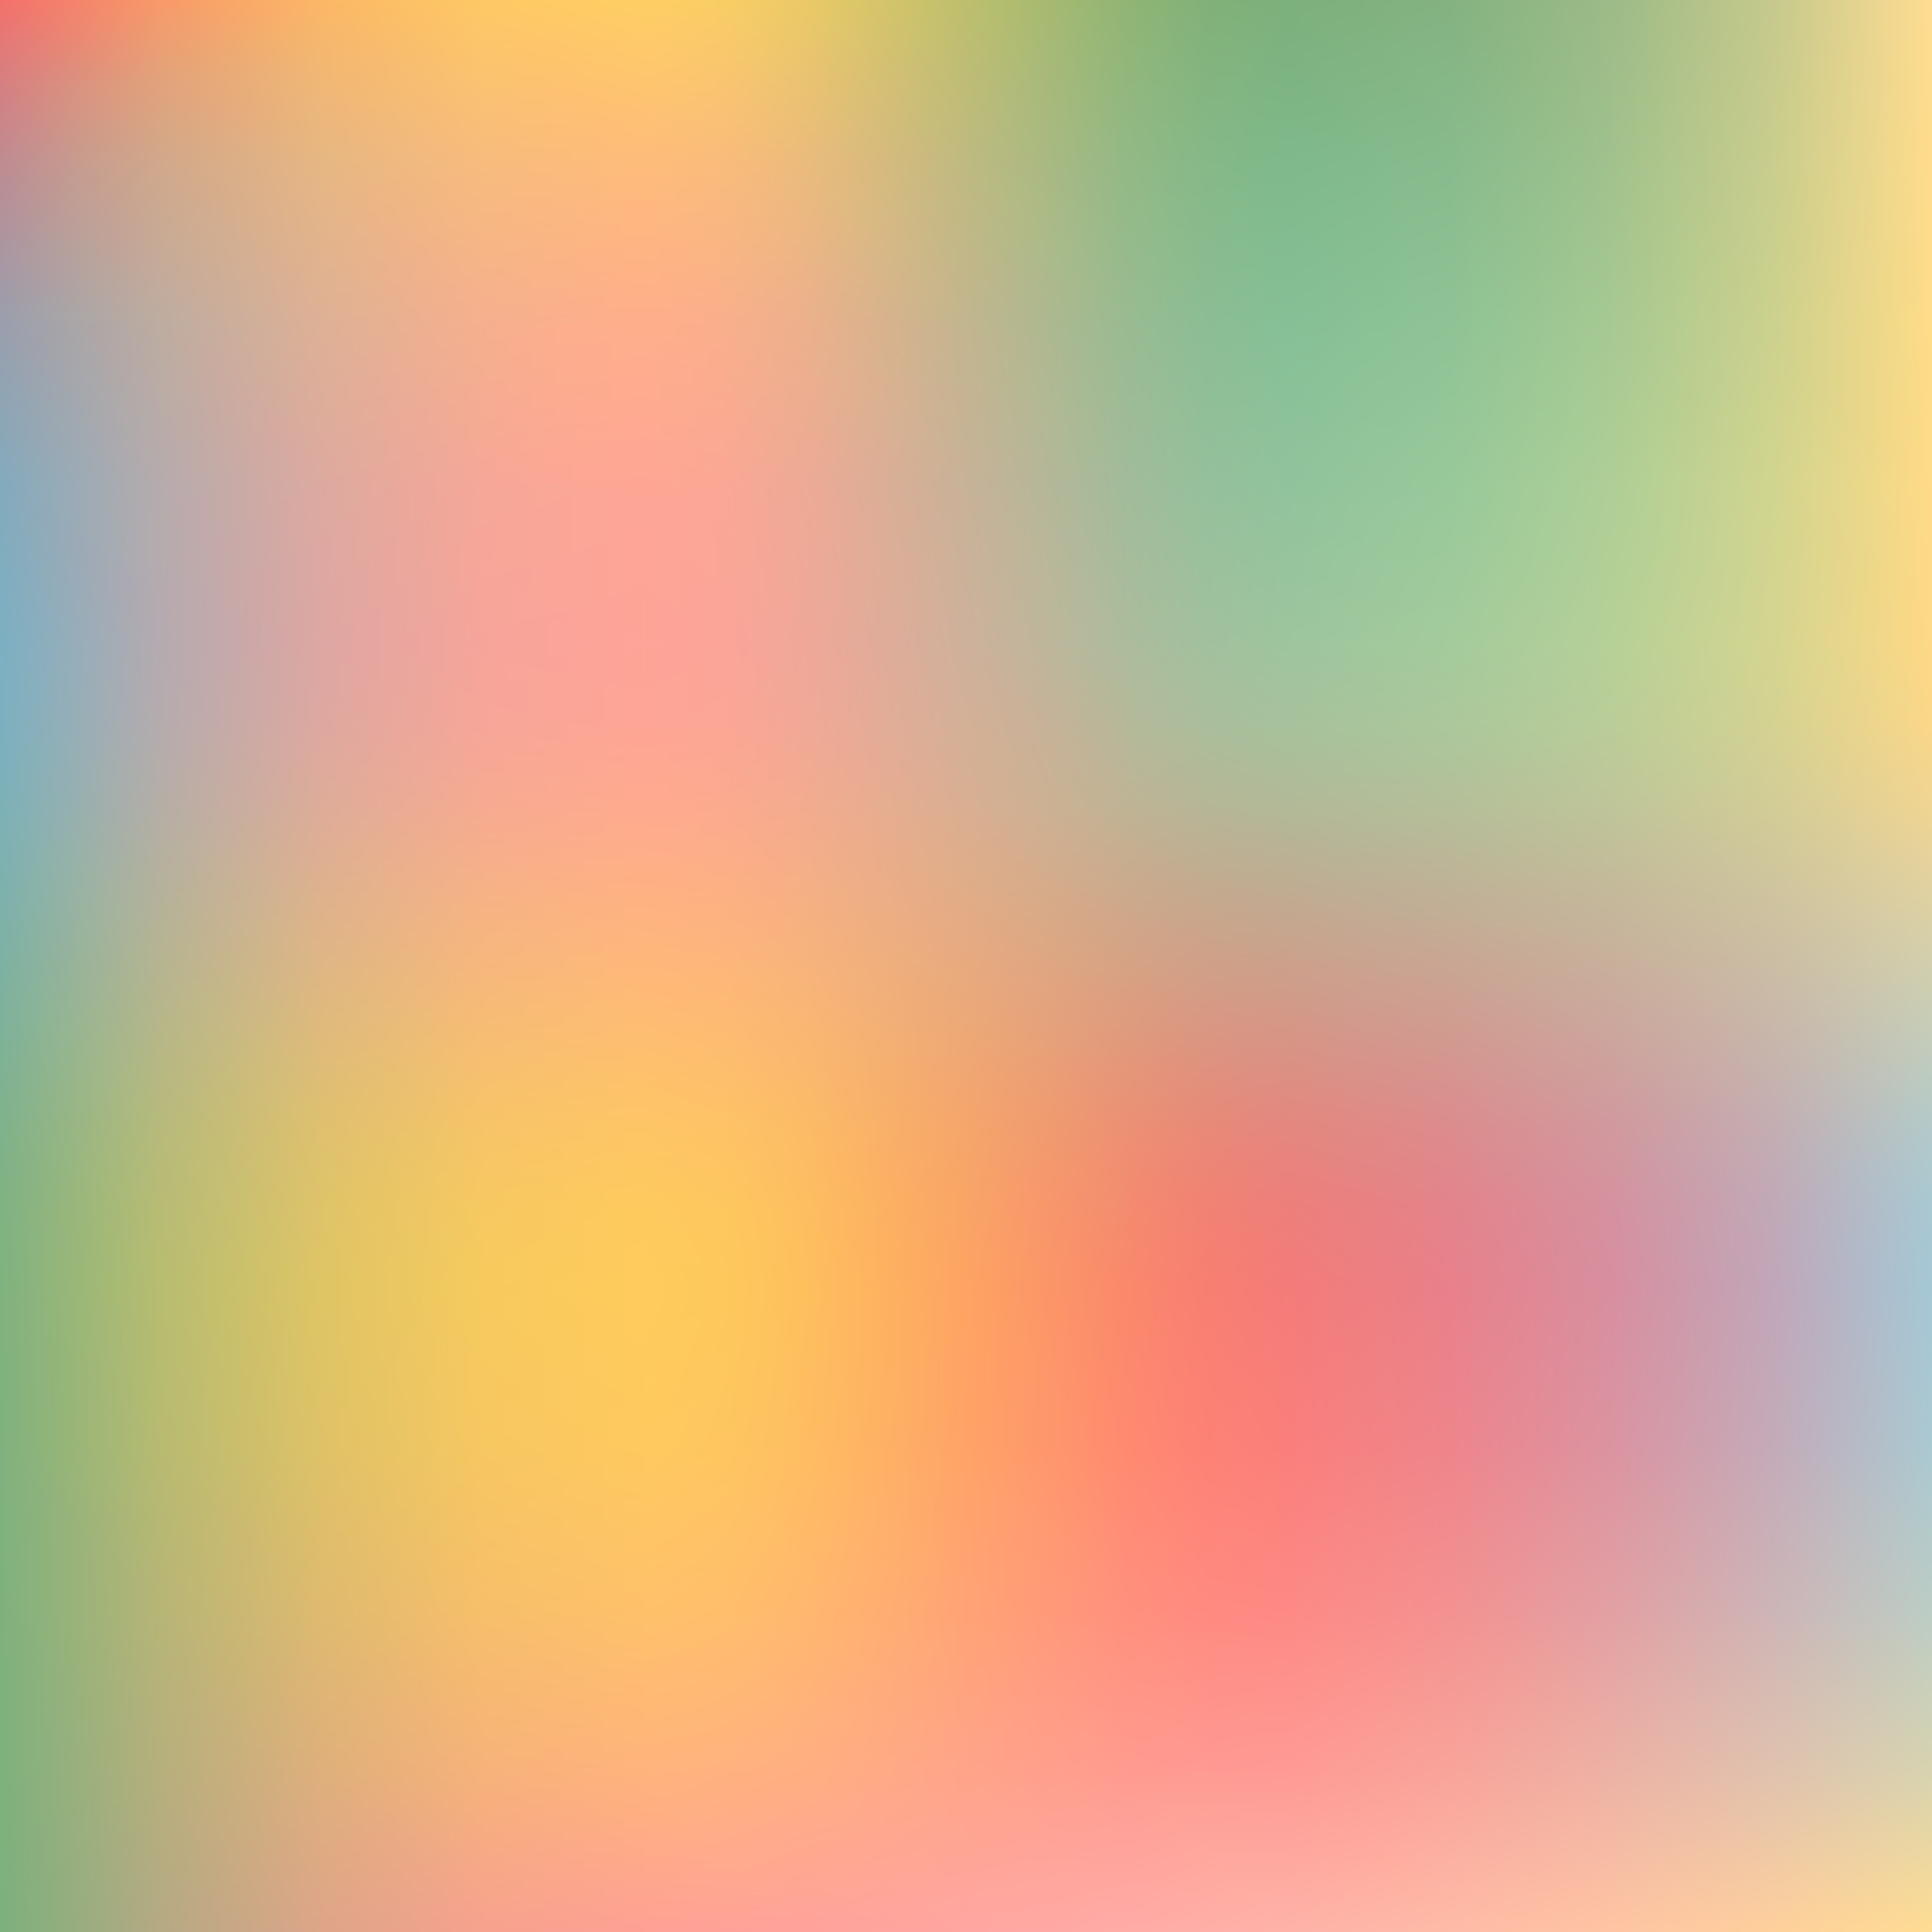 Abstract Blur Gradient Background With Trend Pastel Pink